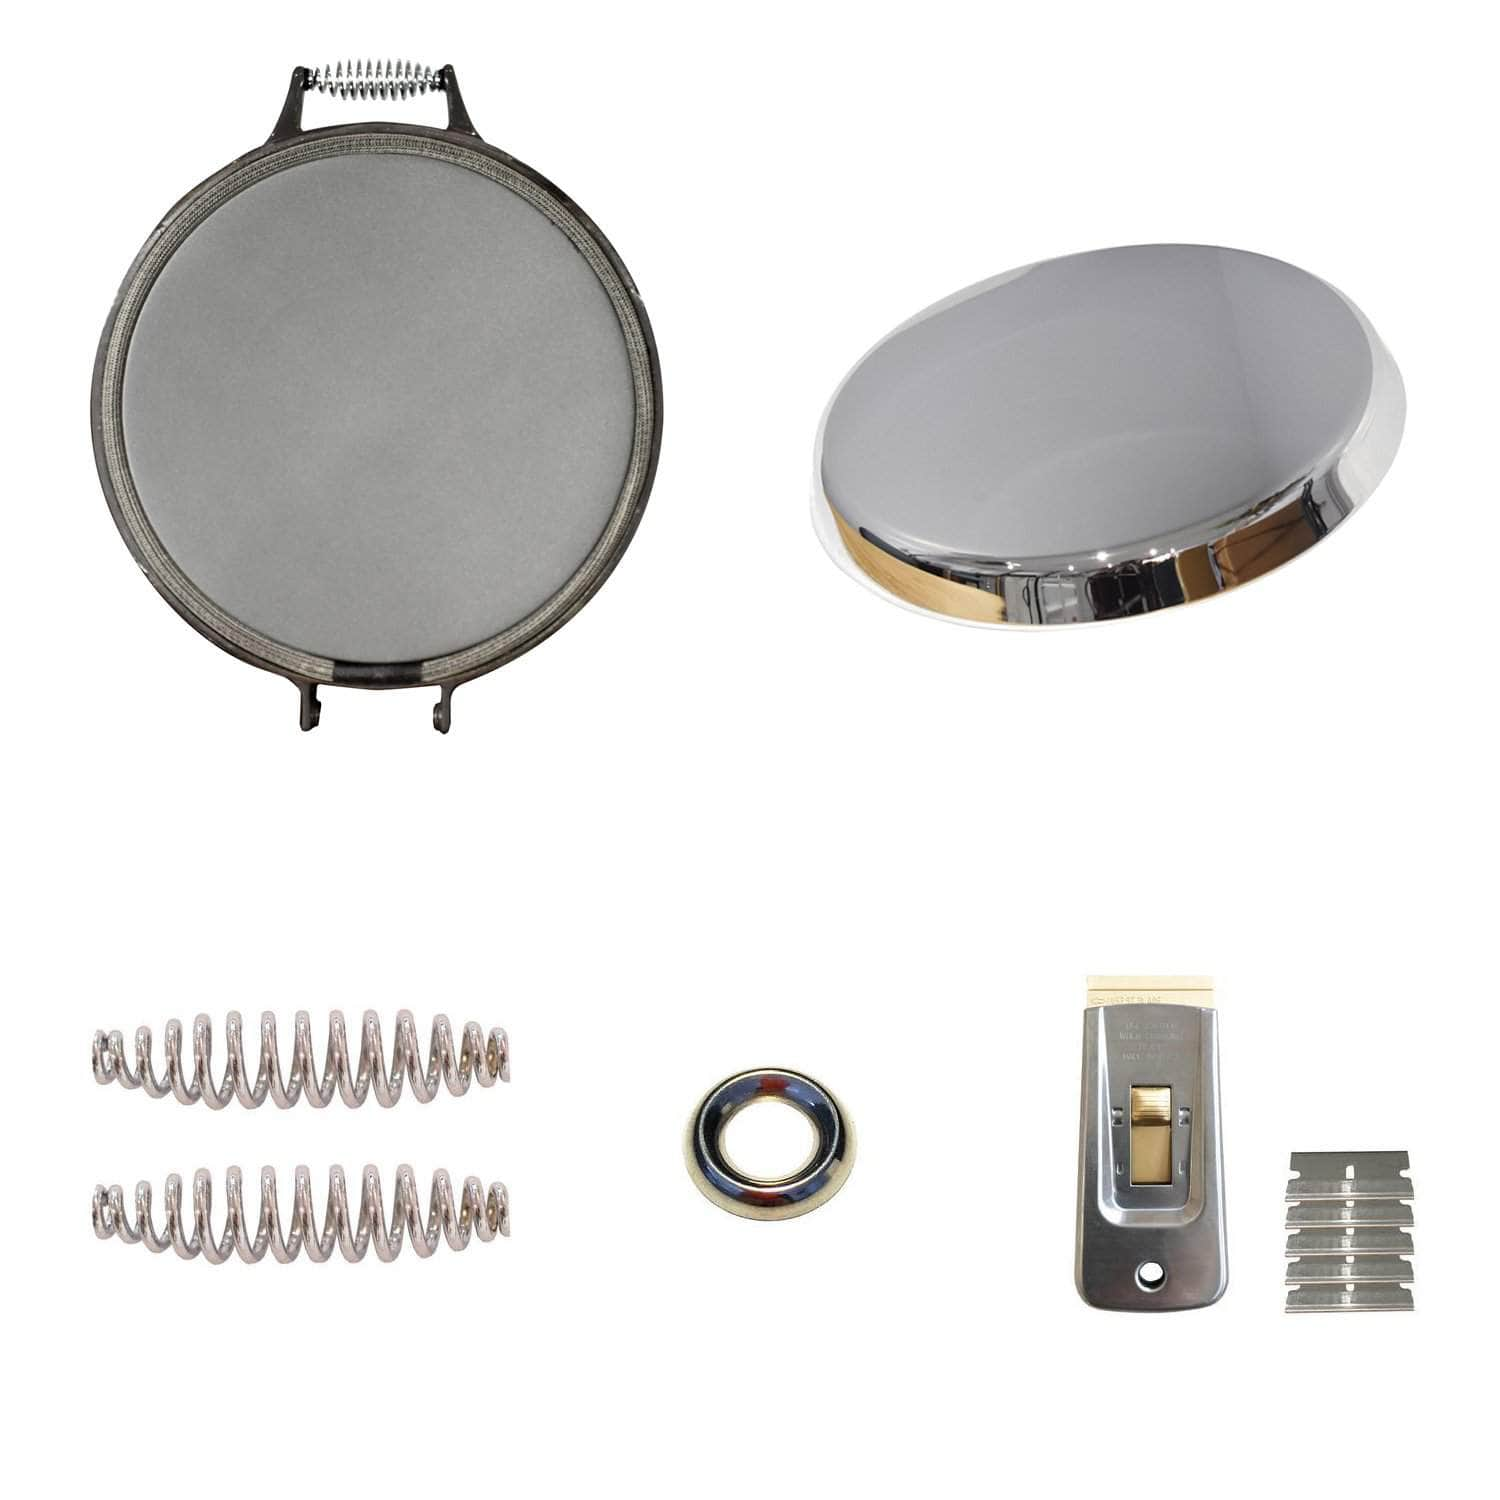 *NEW* Complete non-stick lid refurb kit for use with Aga range cookers